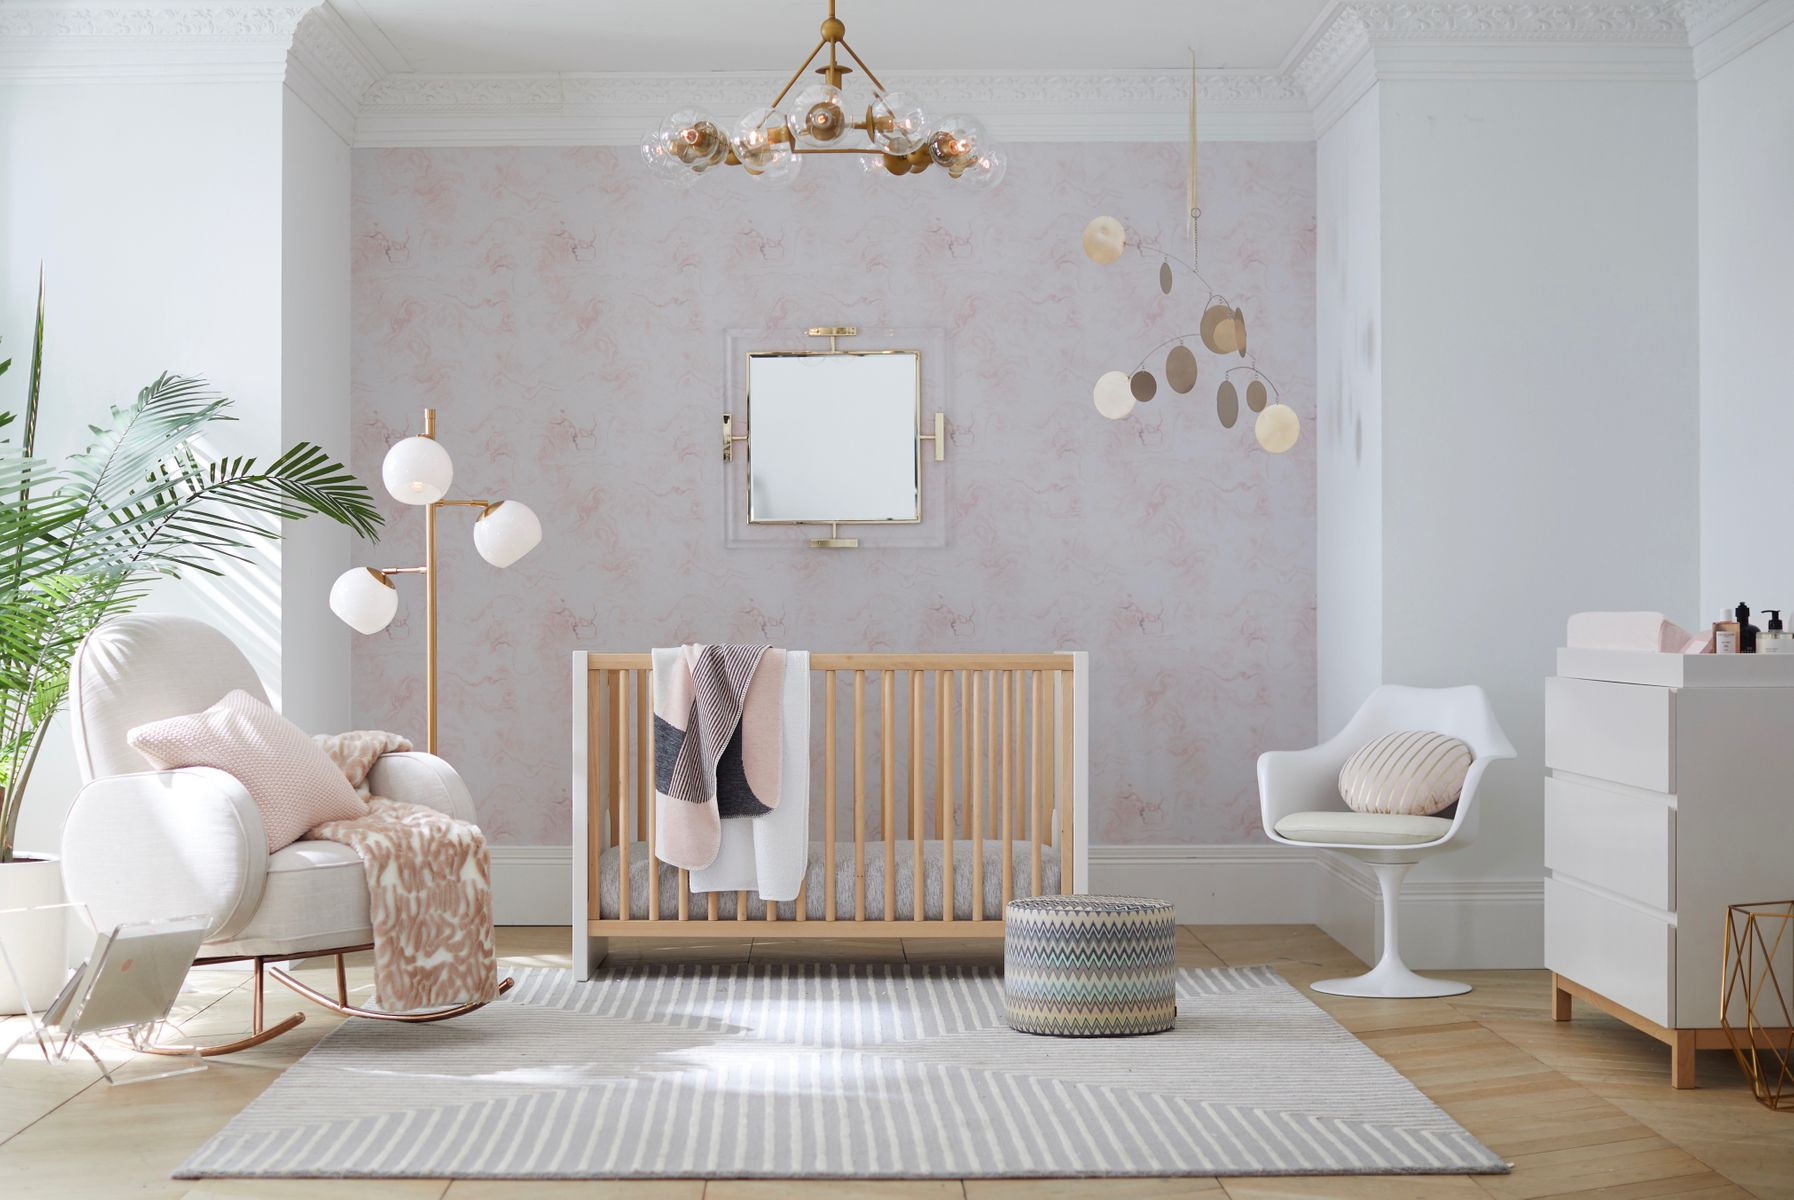 Baby's room decorating ideas, pink and white